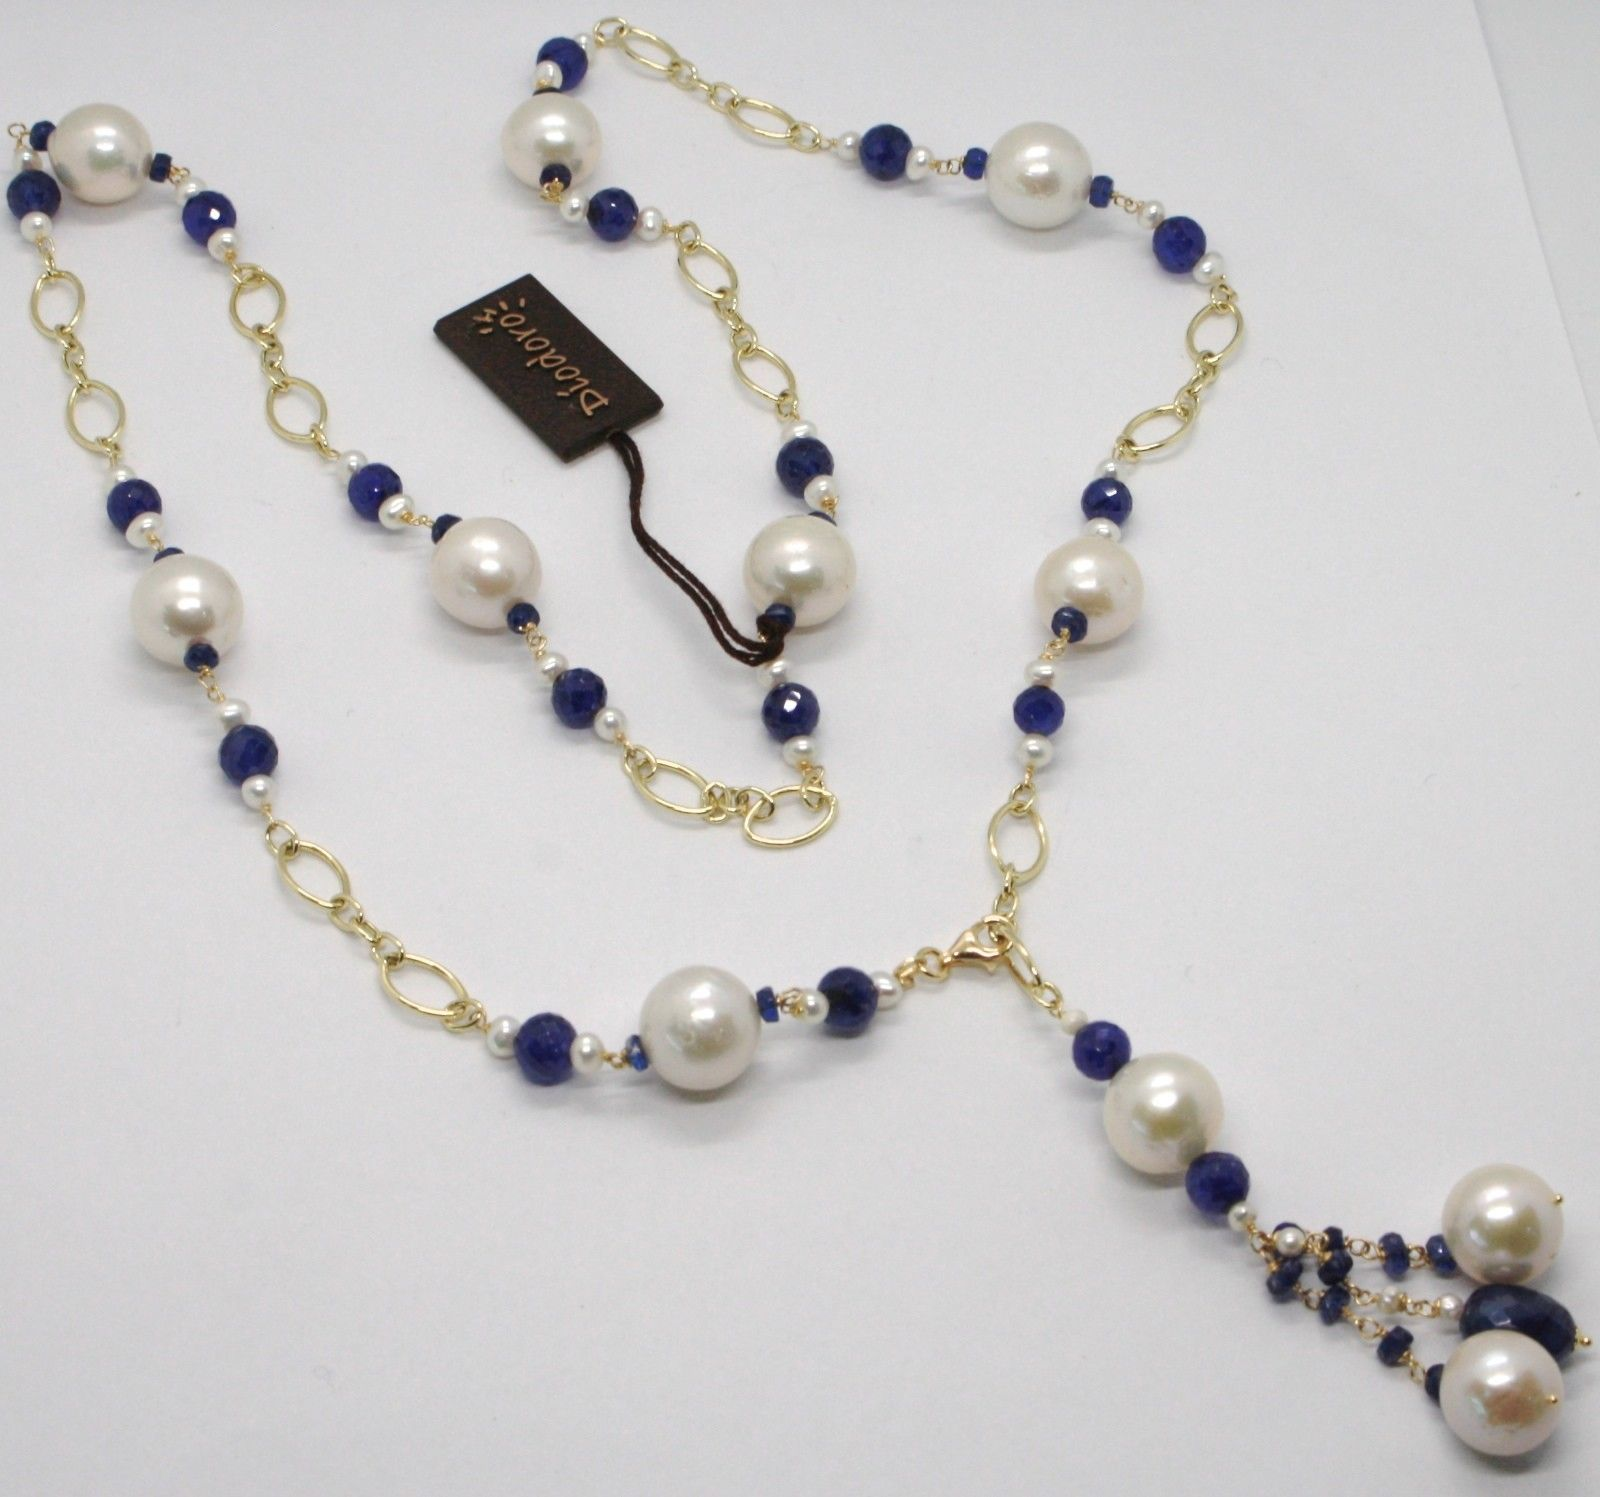 18K YELLOW GOLD LONG LARIAT NECKLACE BLUE SAPPHIRE PEARL, CLUSTER, MADE IN ITALY